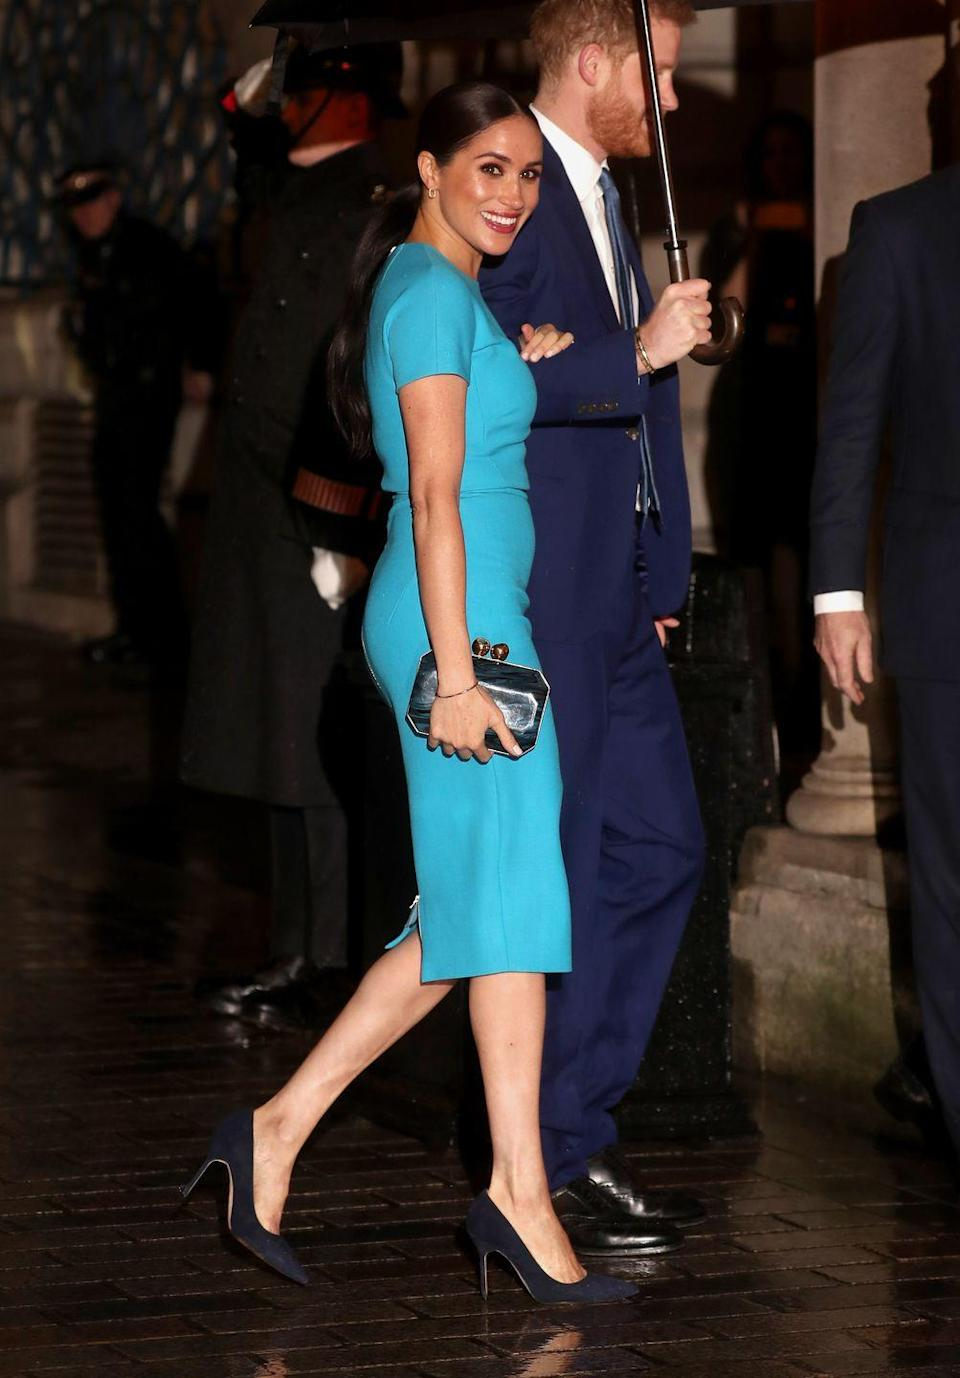 """<p>For one of her final appearances as a working royal, Meghan wore a turquoise <a href=""""https://www.townandcountrymag.com/society/tradition/a31247693/meghan-markle-blue-dress-smile-endeavour-fund-awards-photos/"""" rel=""""nofollow noopener"""" target=""""_blank"""" data-ylk=""""slk:Victoria Beckham dress"""" class=""""link rapid-noclick-resp"""">Victoria Beckham dress</a>, black pumps, and a Stella McCartney clutch. The royal couple attended the <a href=""""https://www.townandcountrymag.com/society/tradition/g31137927/meghan-markle-prince-harry-endeavour-fund-2020-photos/"""" rel=""""nofollow noopener"""" target=""""_blank"""" data-ylk=""""slk:Endeavour Fund Awards"""" class=""""link rapid-noclick-resp"""">Endeavour Fund Awards</a>, an annual ceremony that honors wounded servicemen and women who have used sport or adventurous challenges to aid in their recovery. </p>"""